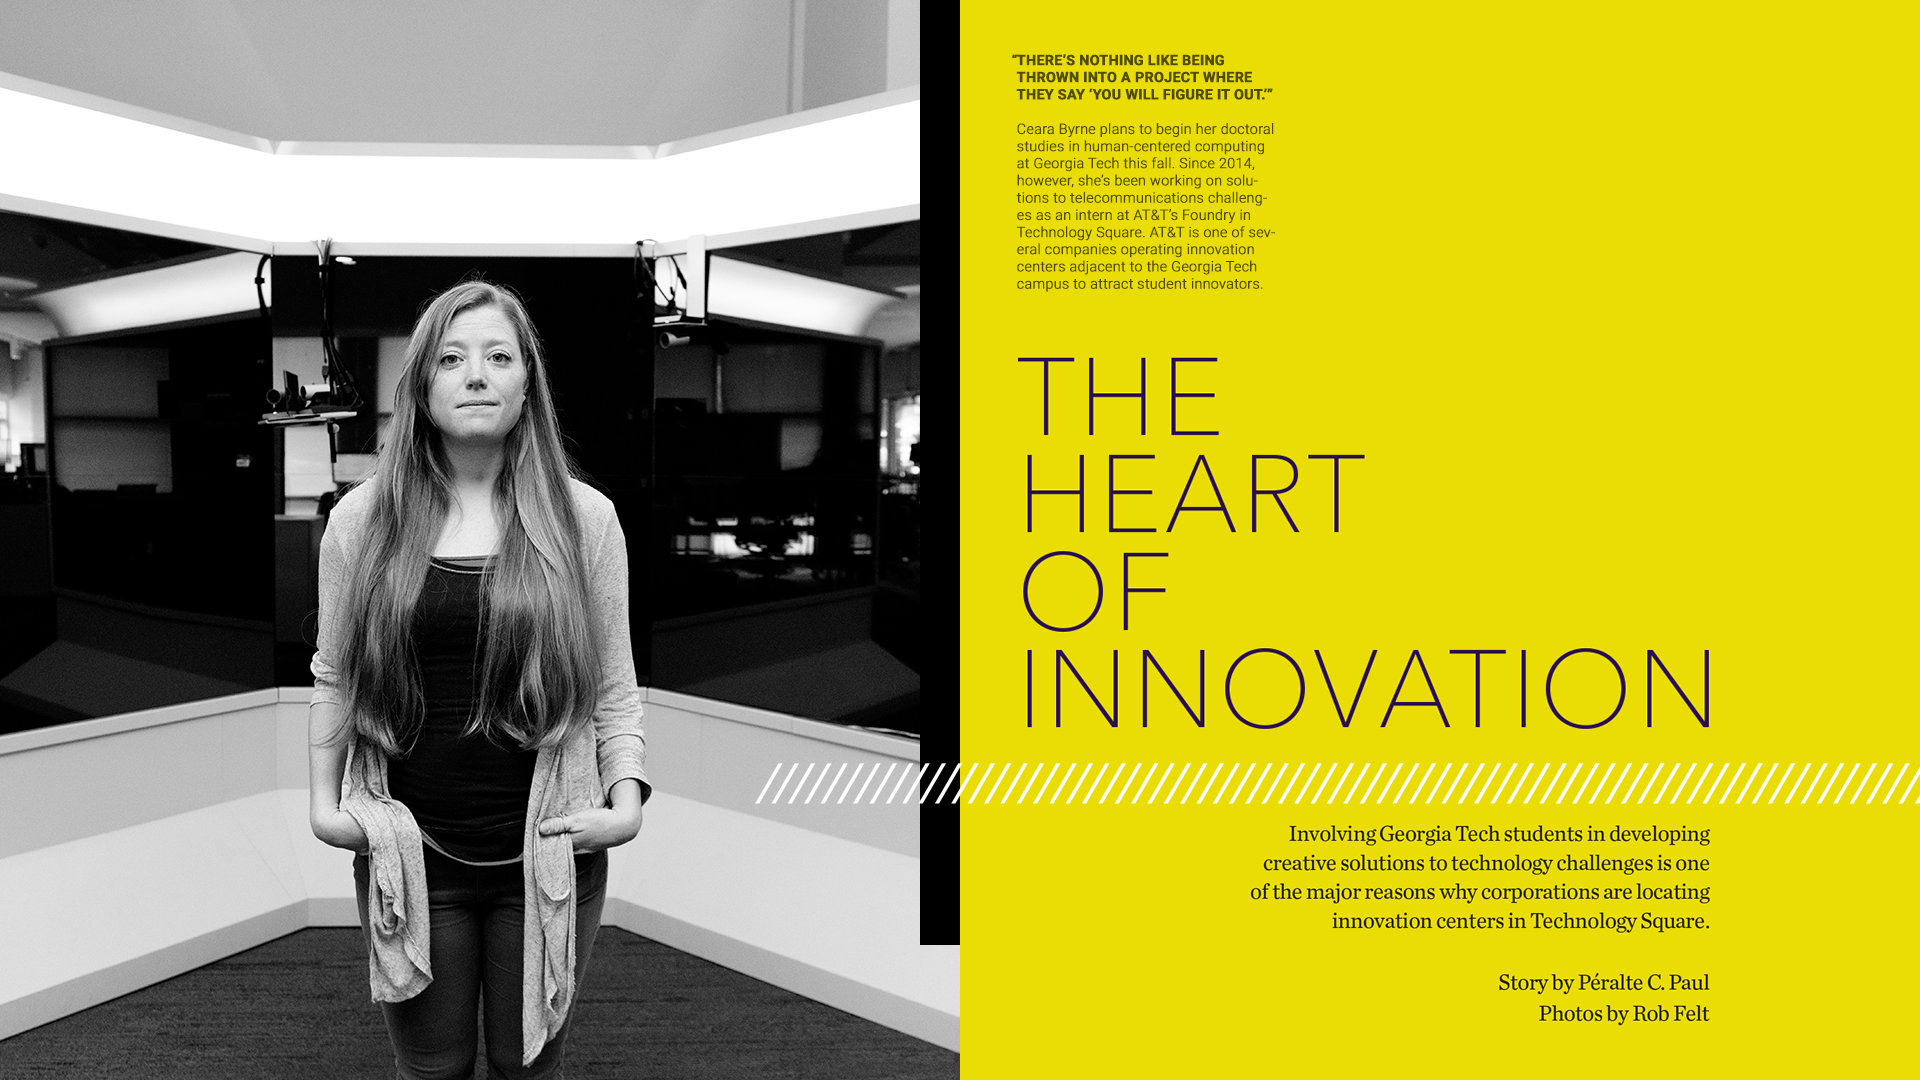 THE HEART OF INNOVATION Involving Georgia Tech students in developing creative solutions to technology challenges is one of the major reasons why corporations are locating innovation centers in Technology Square. Story by Péralte C. Paul Photos by Rob Felt